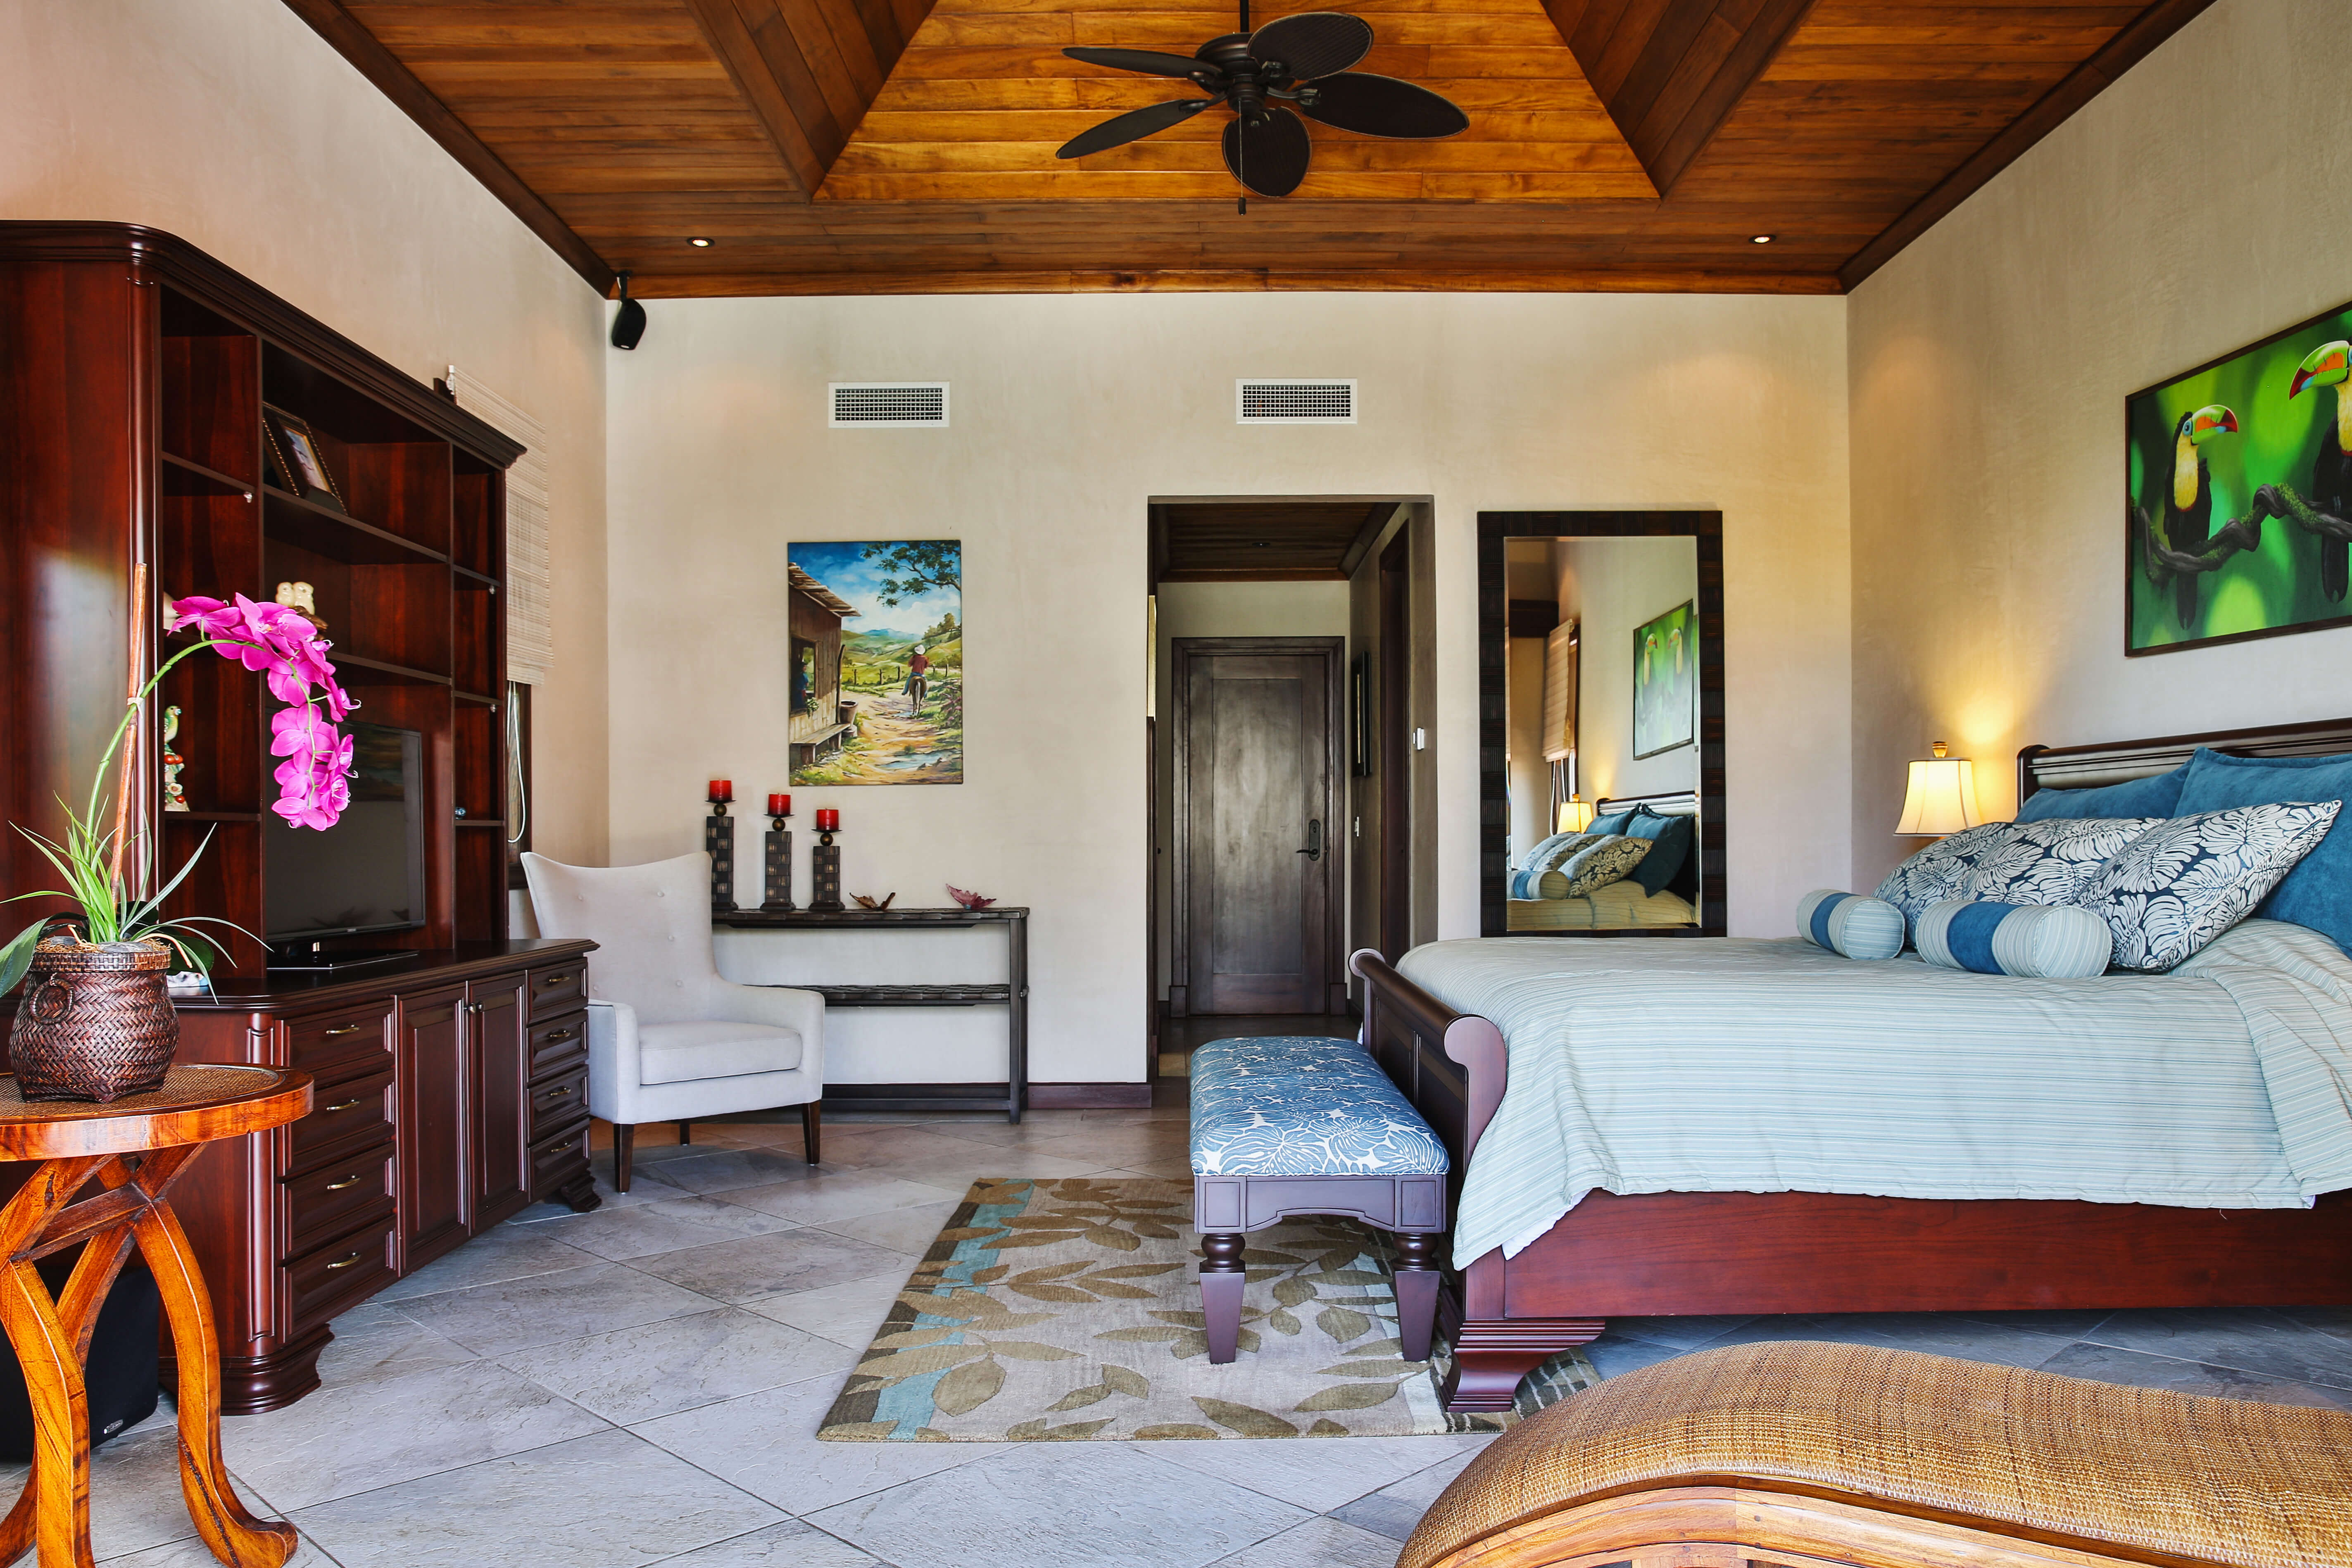 Bedroom with recessed wood ceiling